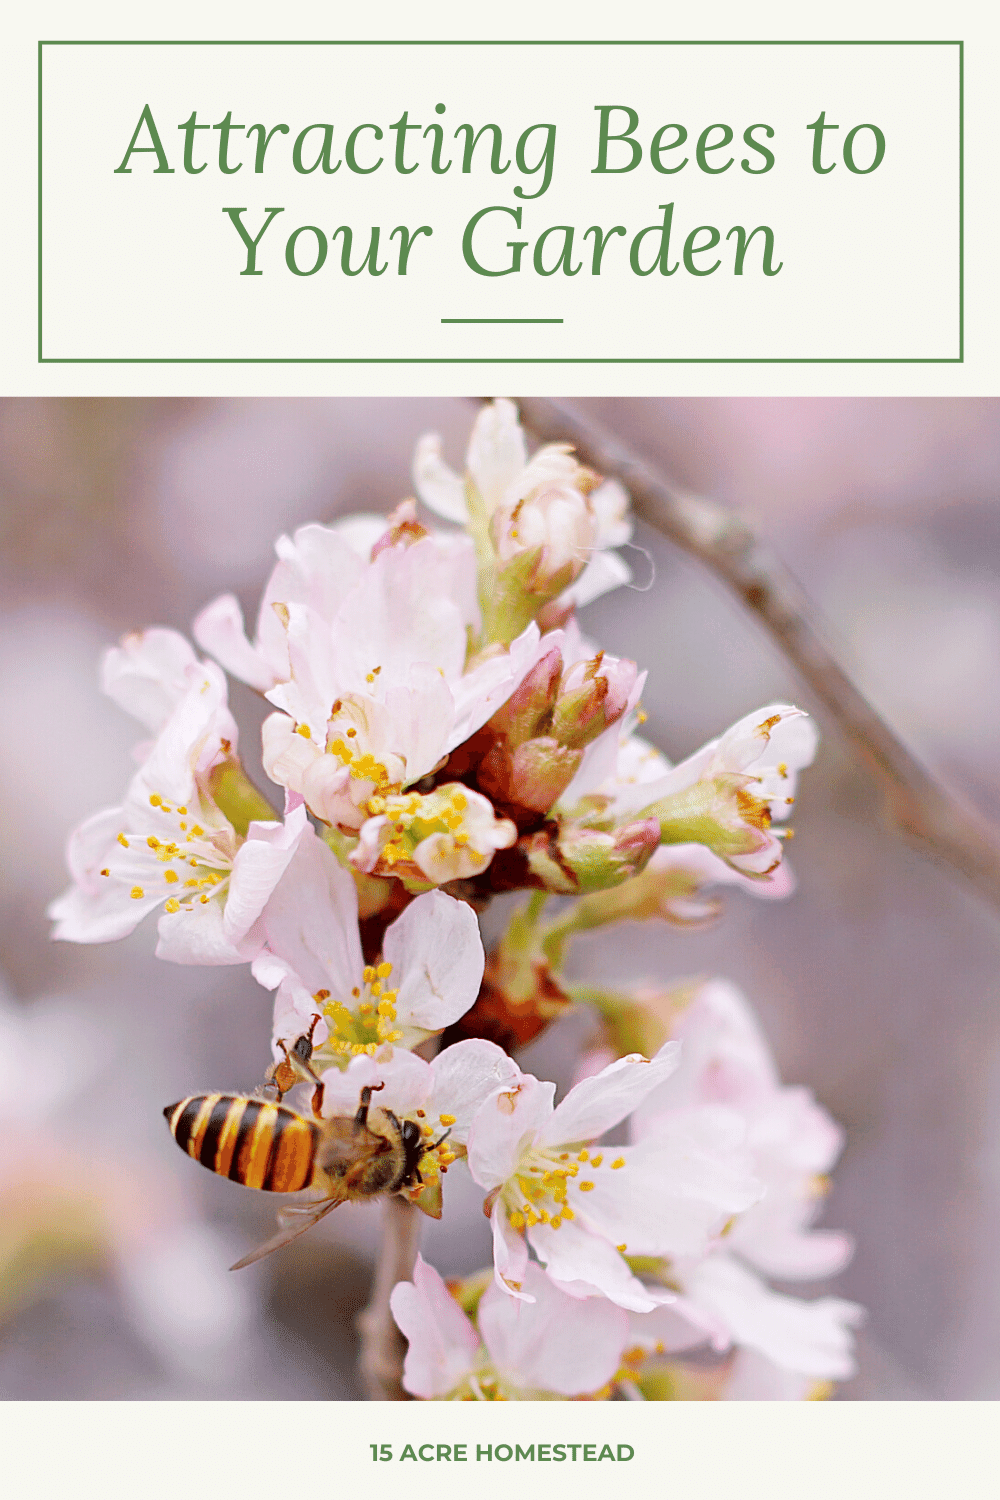 With bees being in the decline that they are in, consider attracting bees to your garden.